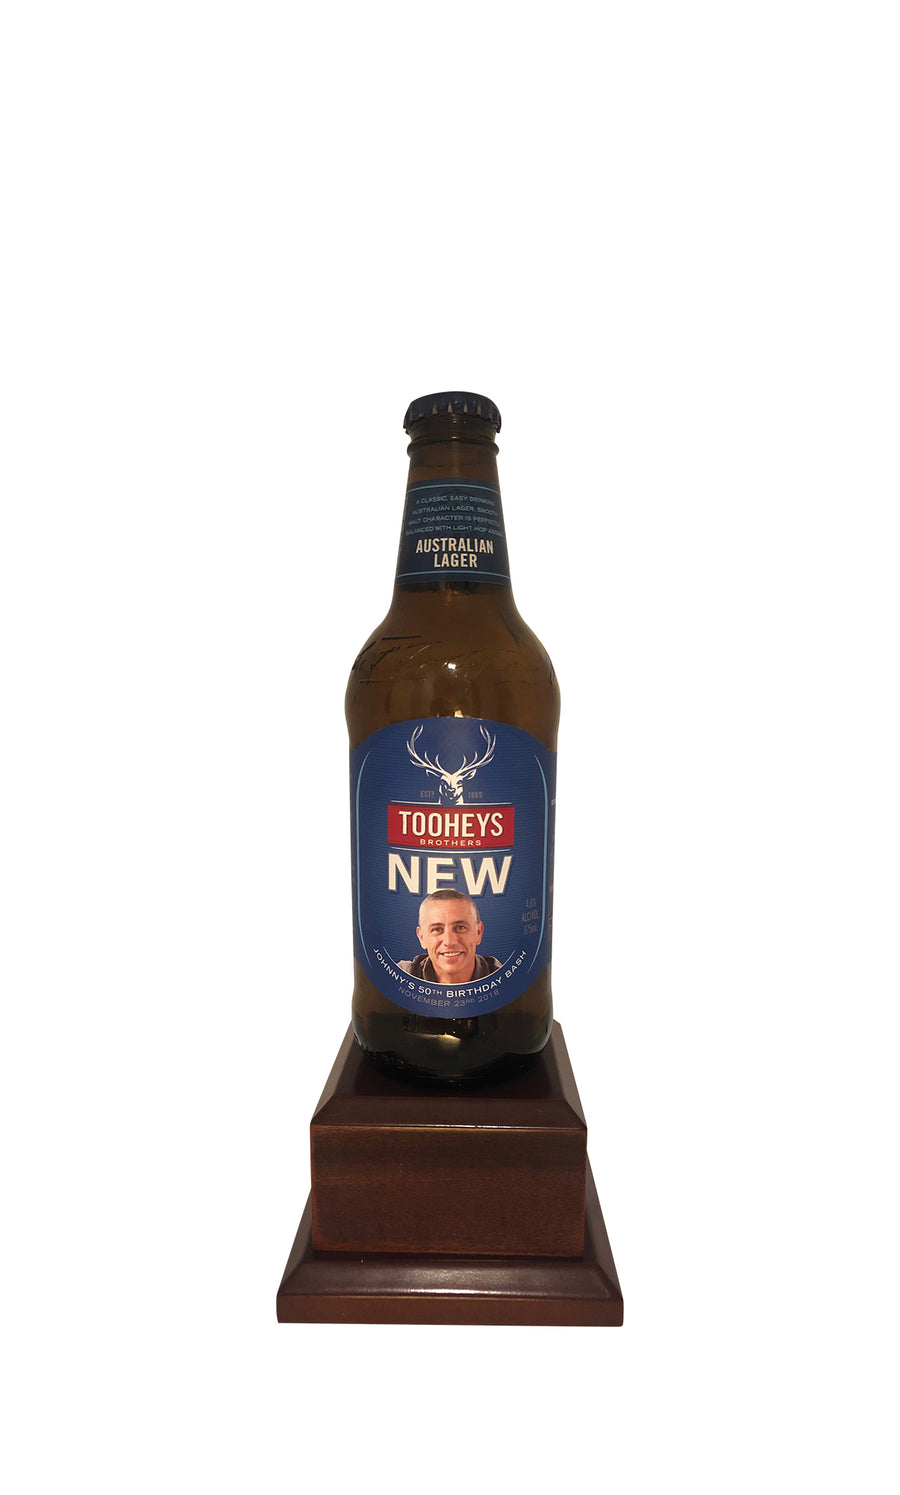 TOOHEYS NEW Bottle on Pedestal with PERSONALISED LABEL